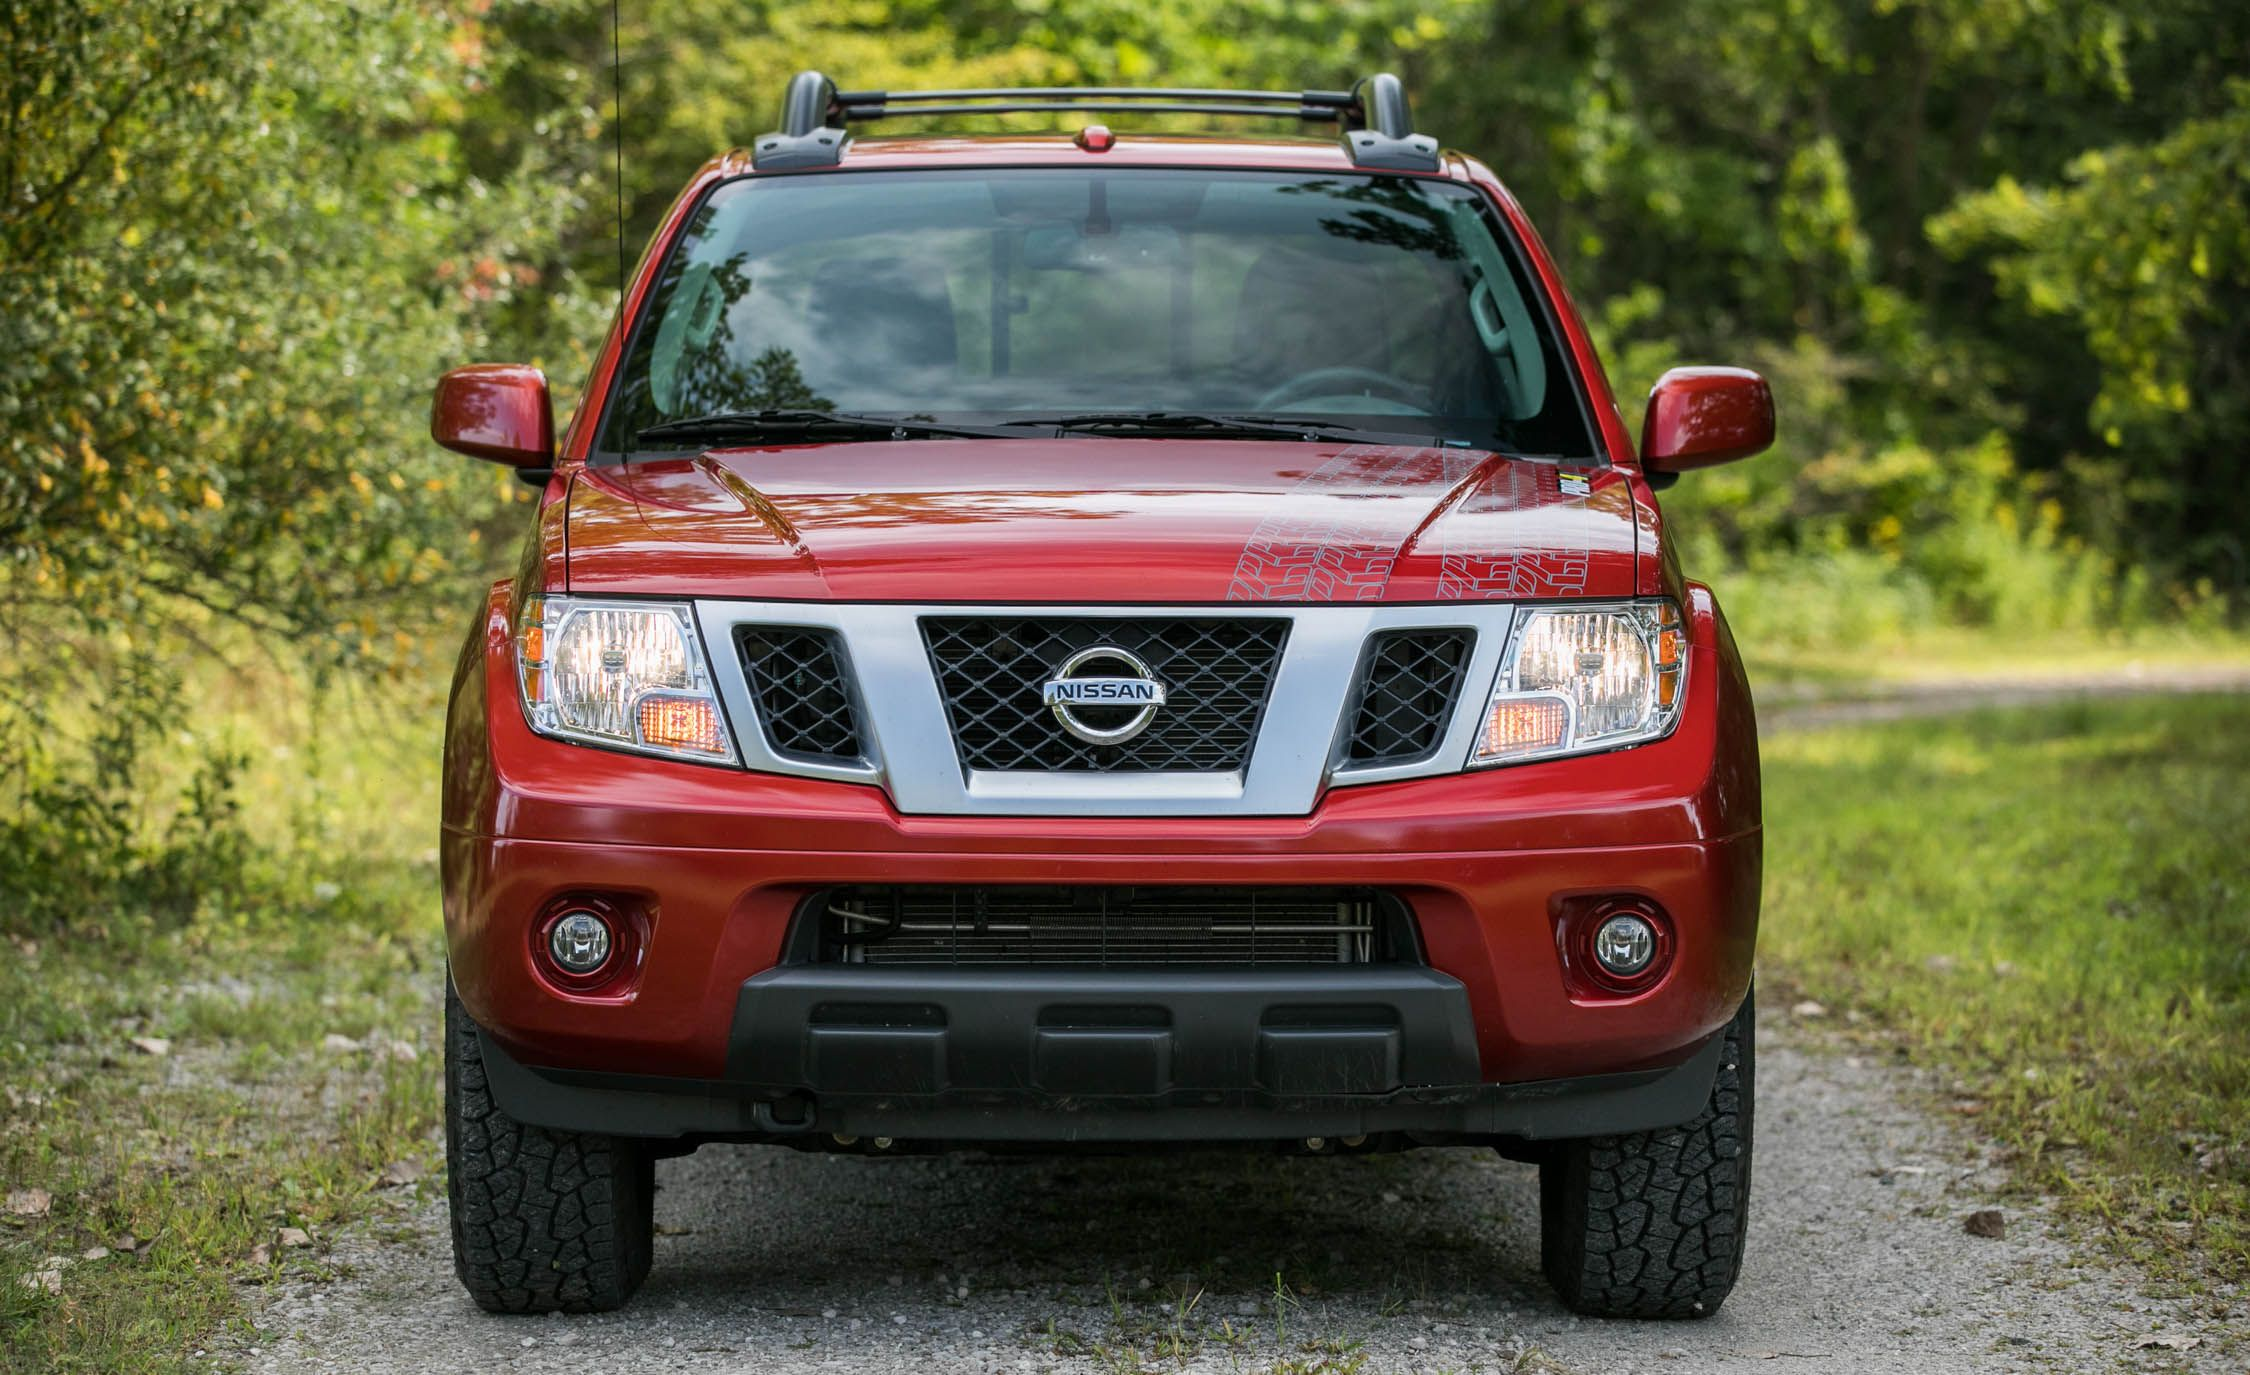 2018 nissan frontier engine and transmission review car and driver rh caranddriver com 2017 Nissan Frontier Interior 2017 Nissan Frontier Interior